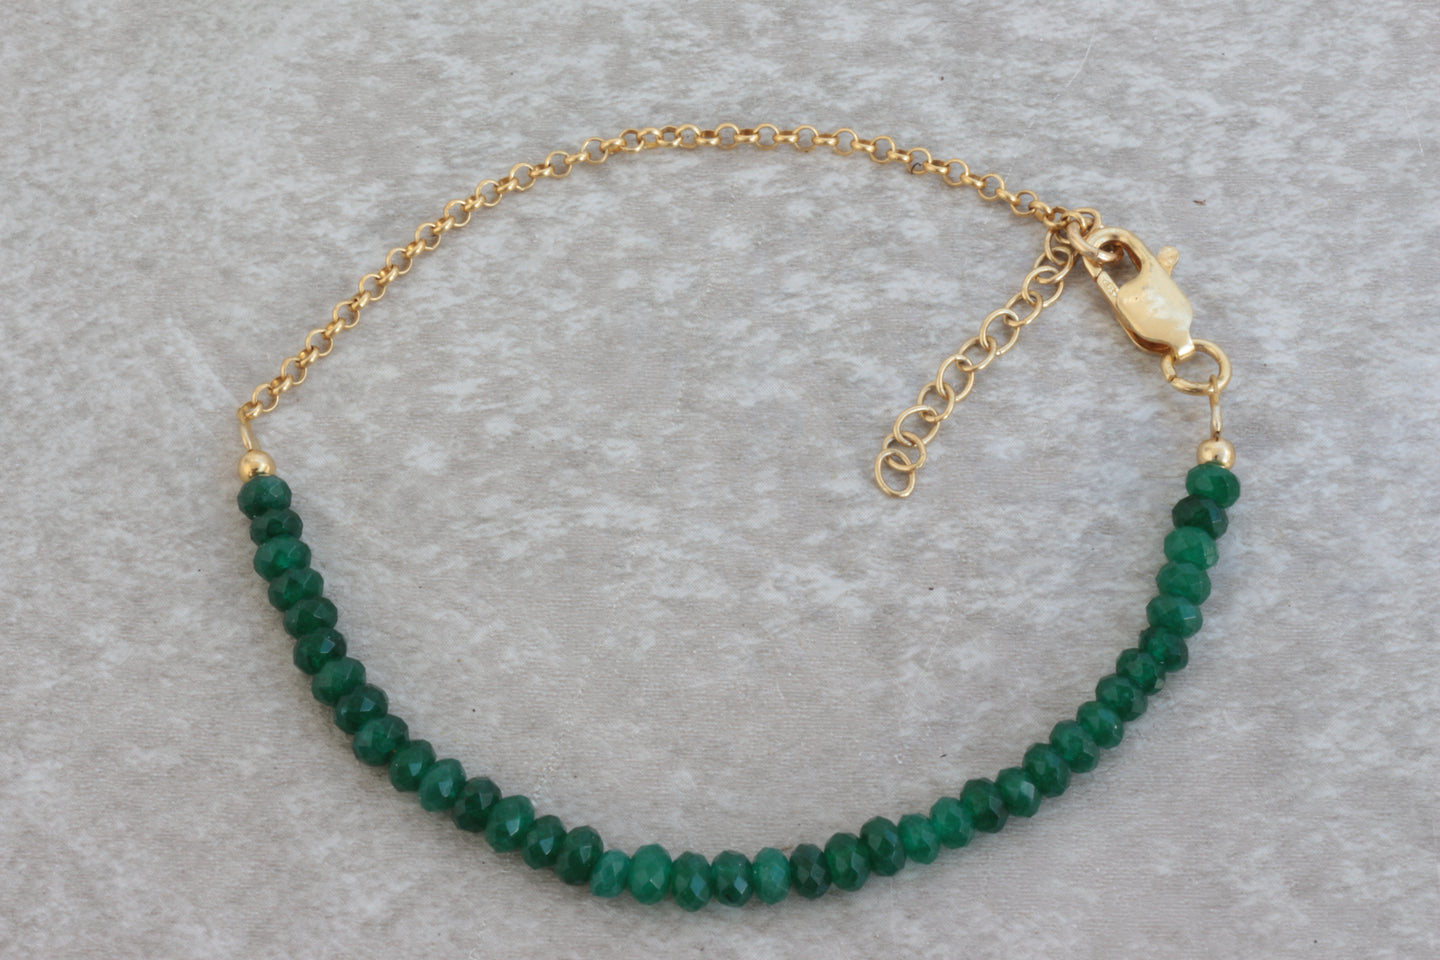 Green_onyx_beaded_gold_chain_bracelet_for_women